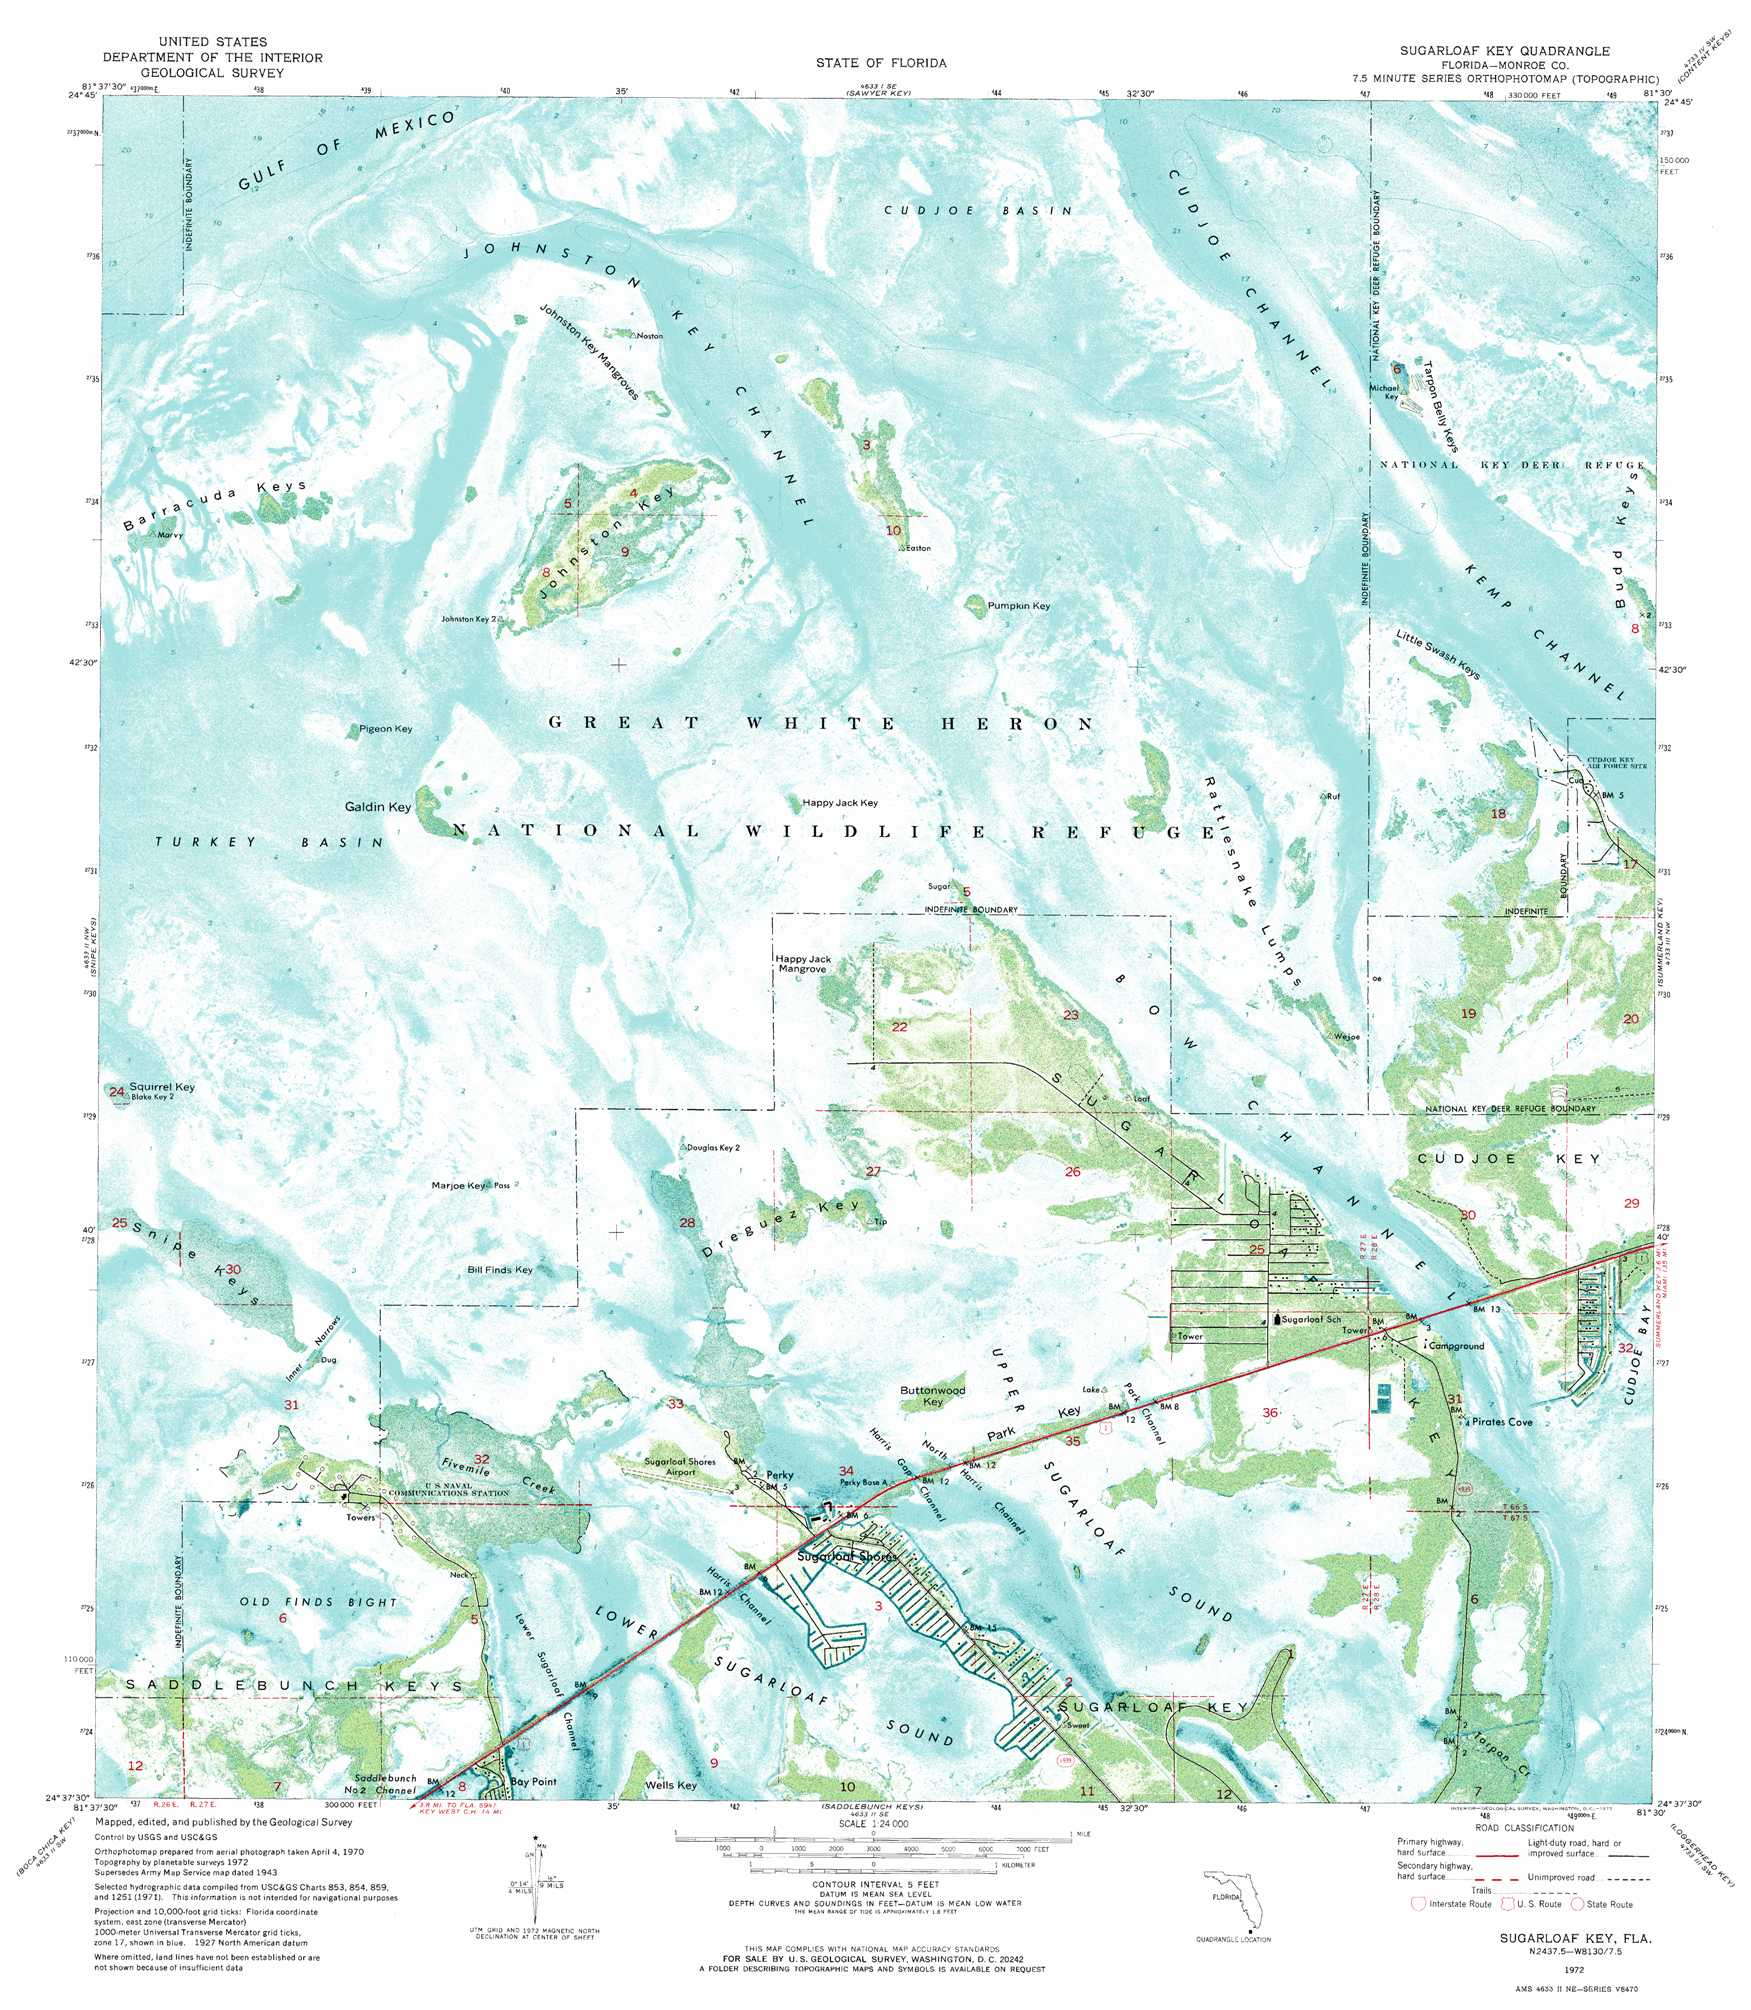 Sugarloaf Key Topographic Map FL USGS Topo Quad F - Florida topographic map free